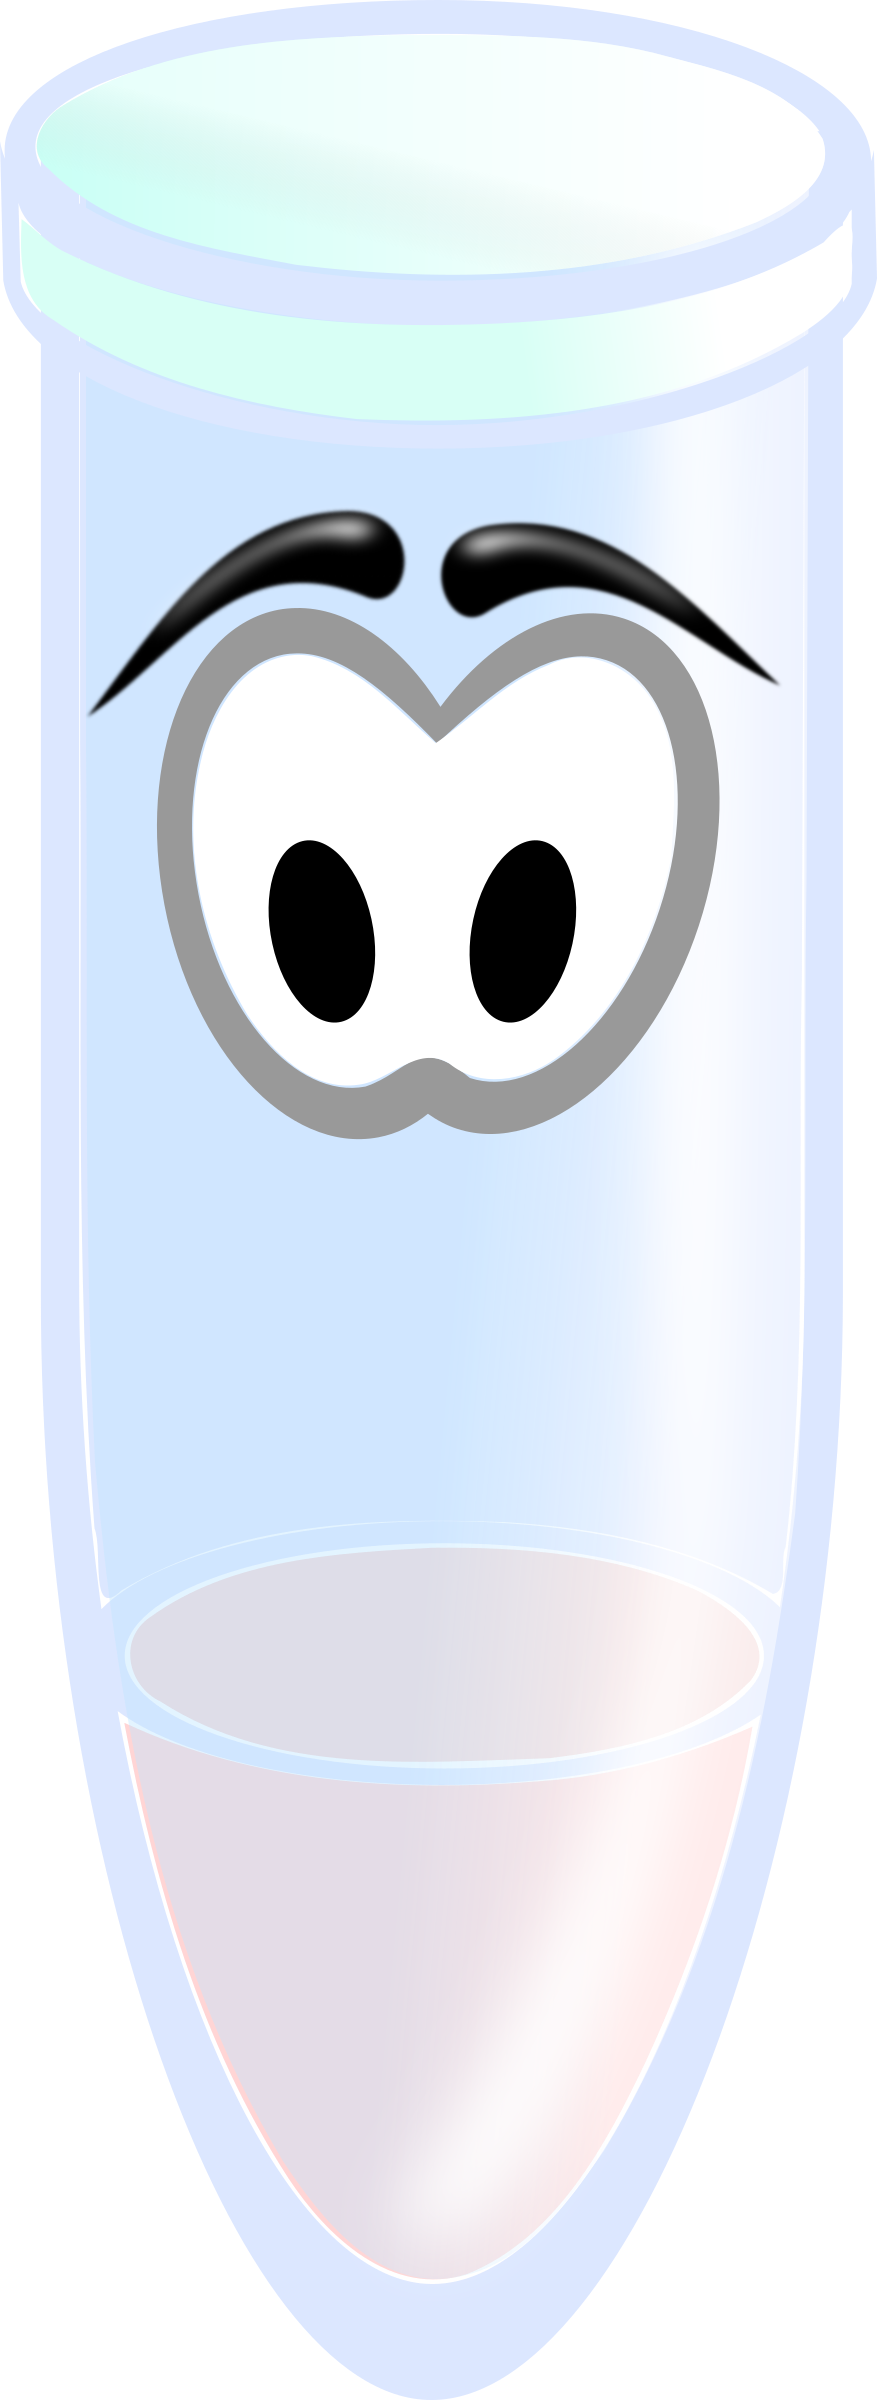 Reaction tube by gmad